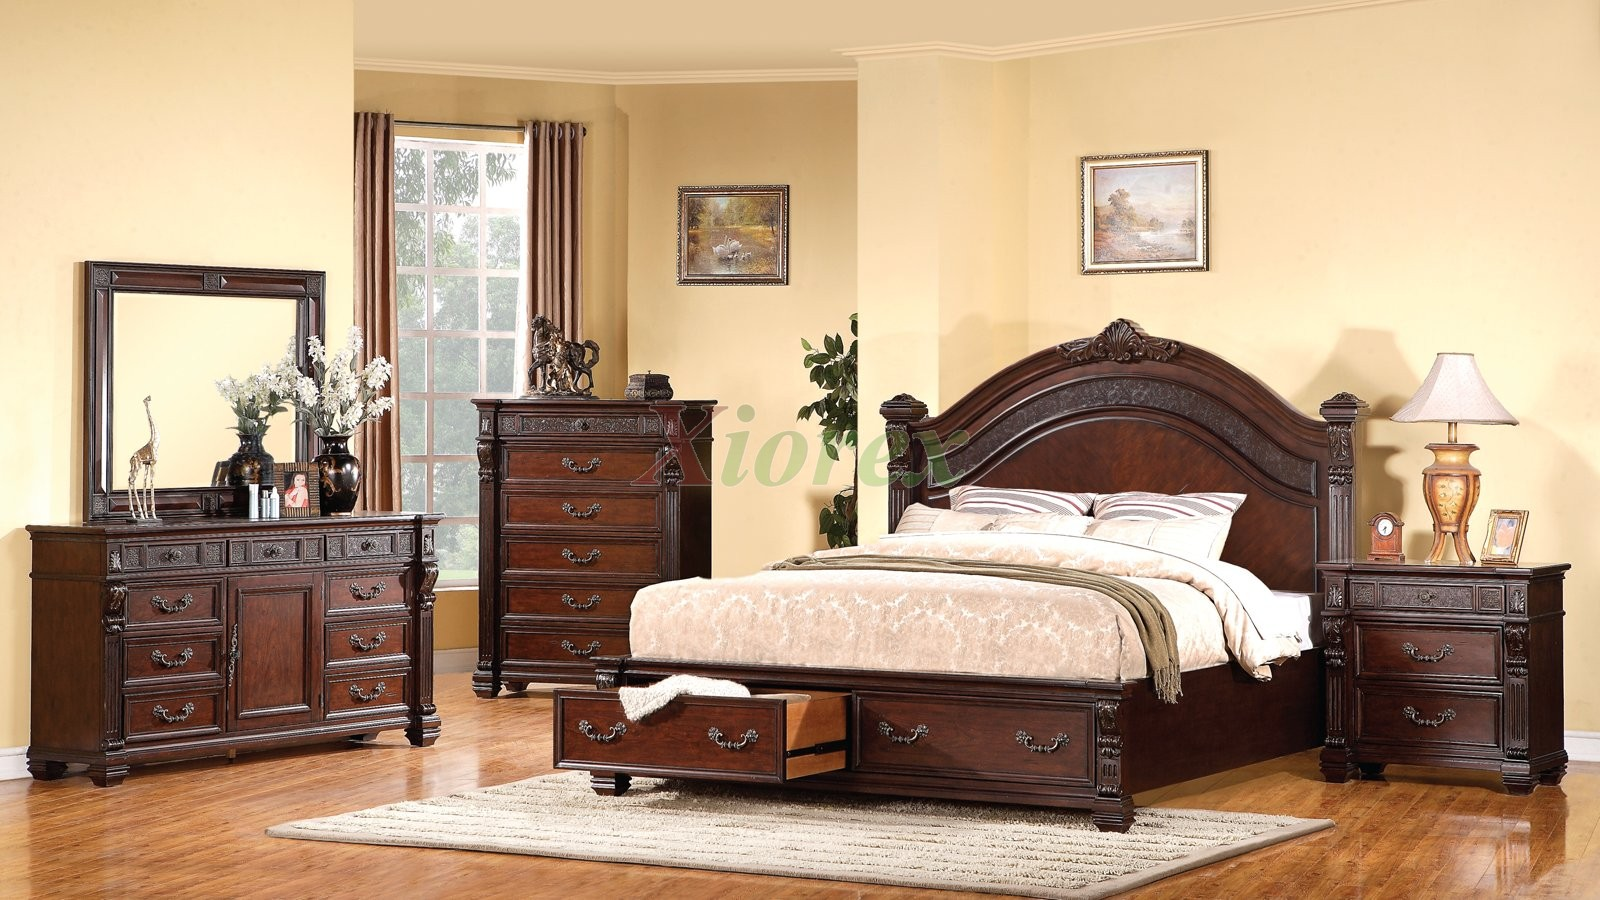 Outstanding Bedroom Furniture Sets with Storage 1600 x 900 · 333 kB · jpeg